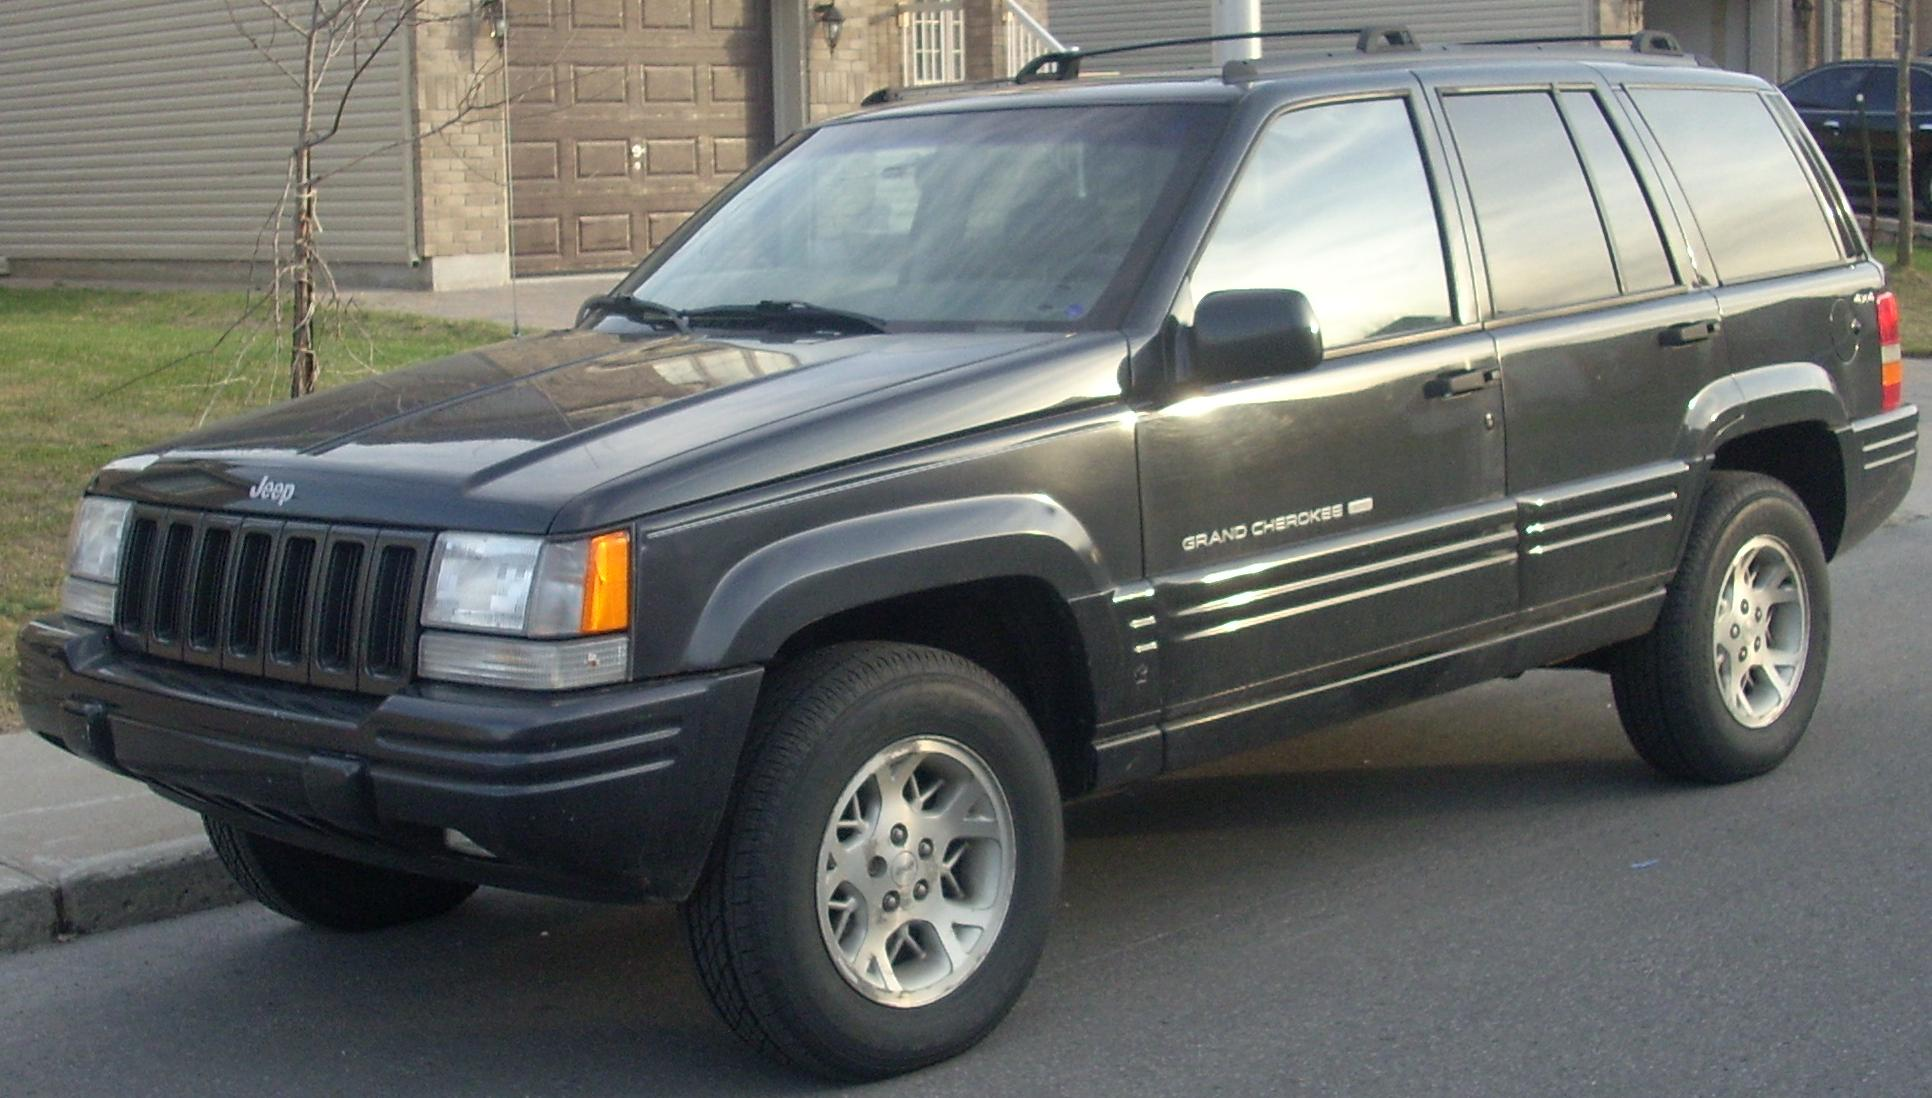 hight resolution of file 1996 98 jeep grand cherokee 4x4 jpg